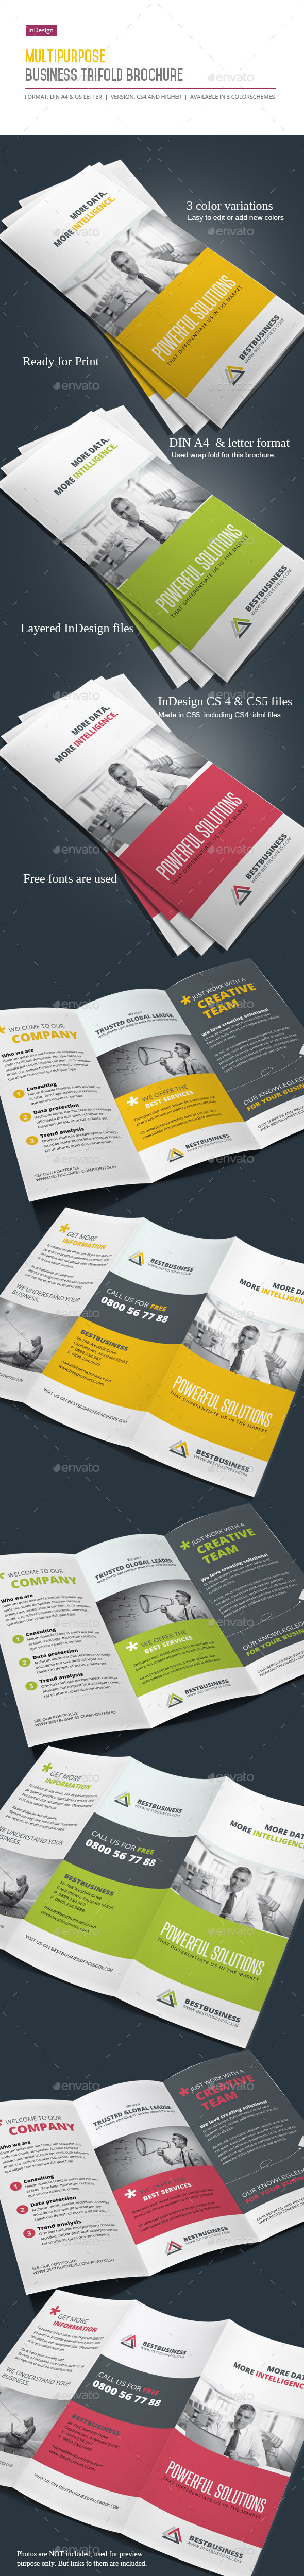 GraphicRiver Business Trifold Brochure Vol III 10153478